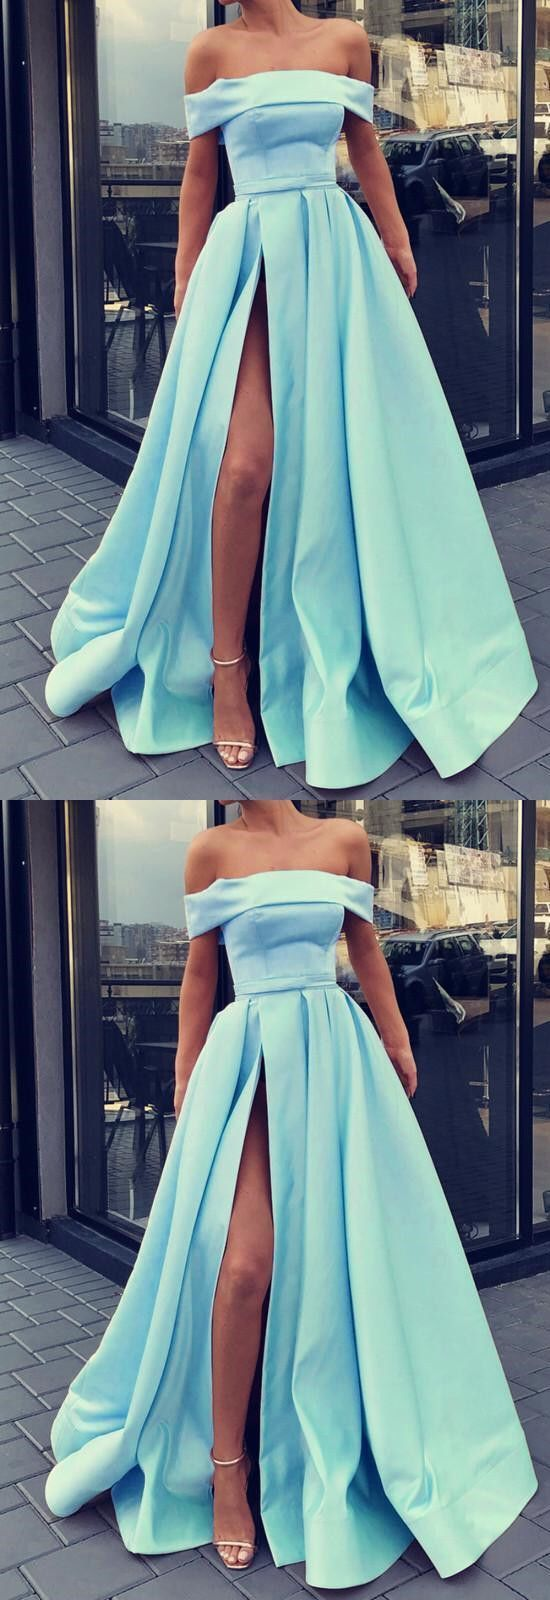 13 dress Prom off shoulder ideas